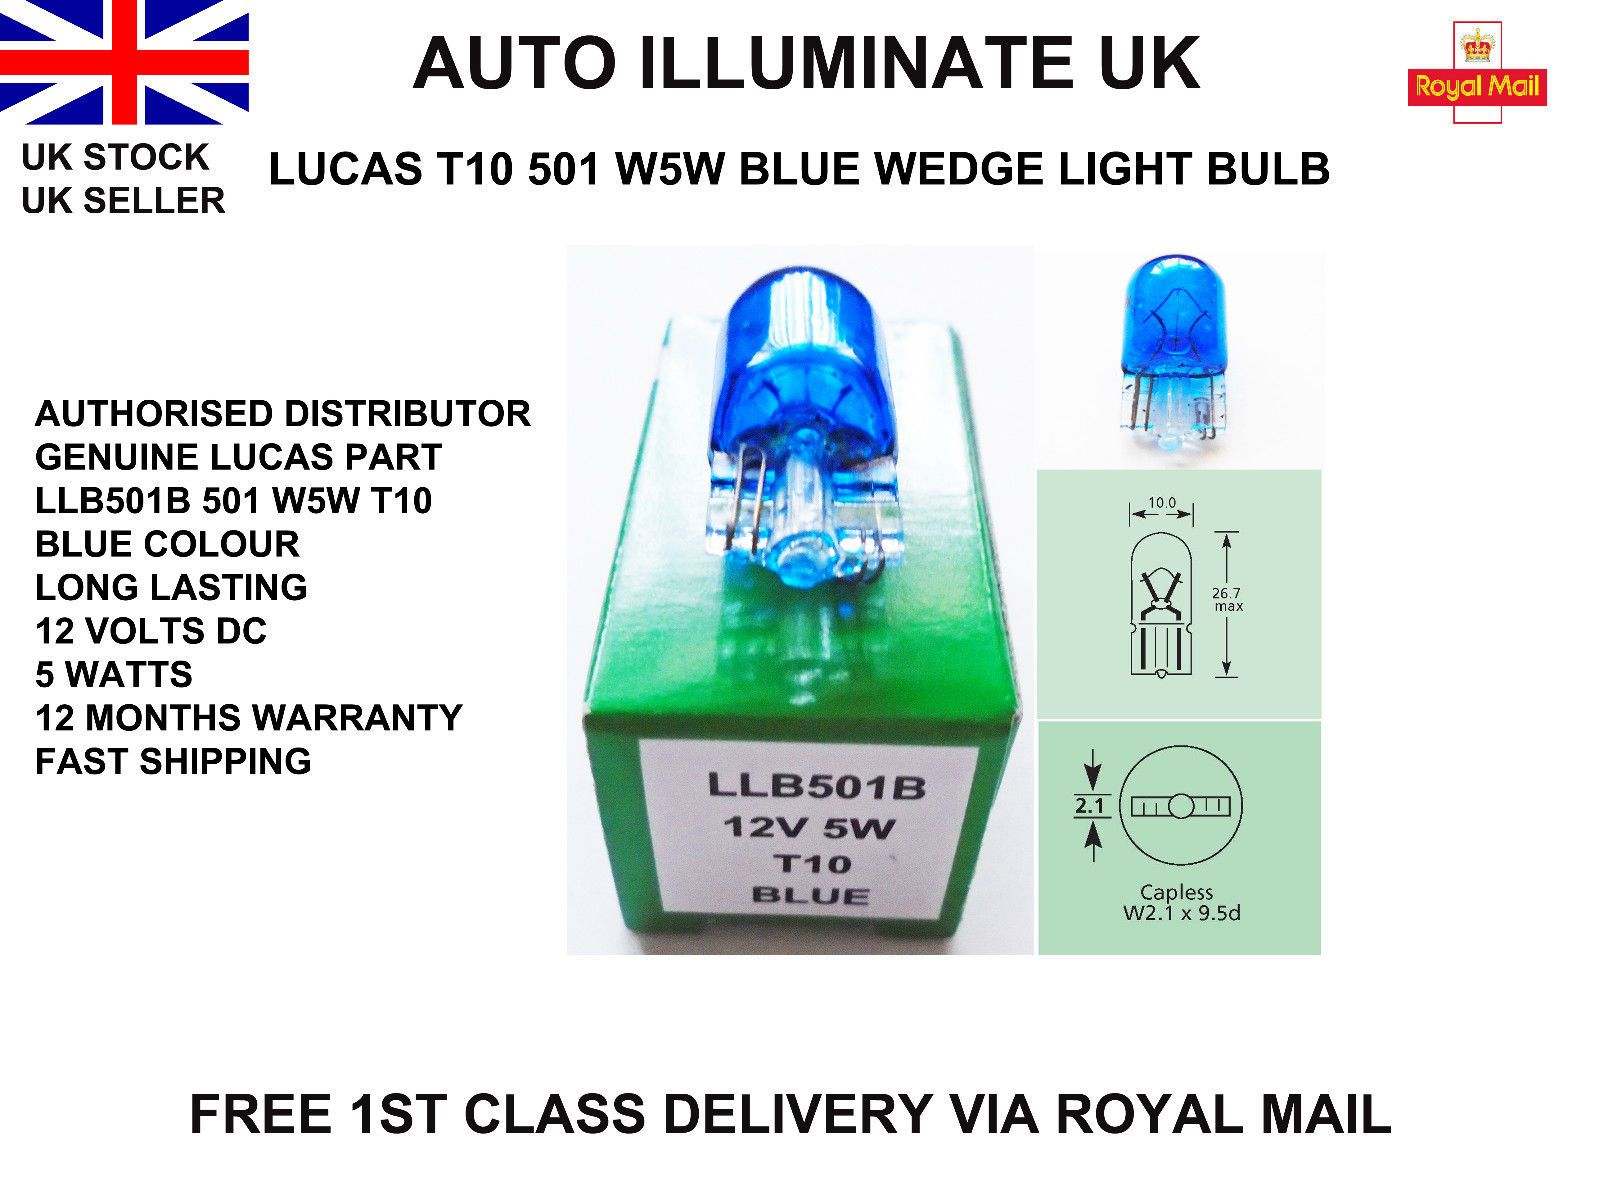 Lucas Llb501b W5w T10 Blue Capless Car Light Bulb Lamp Interior Dash 501 12v 5w Lighting Suppliers Royal Mail Uk Bulb